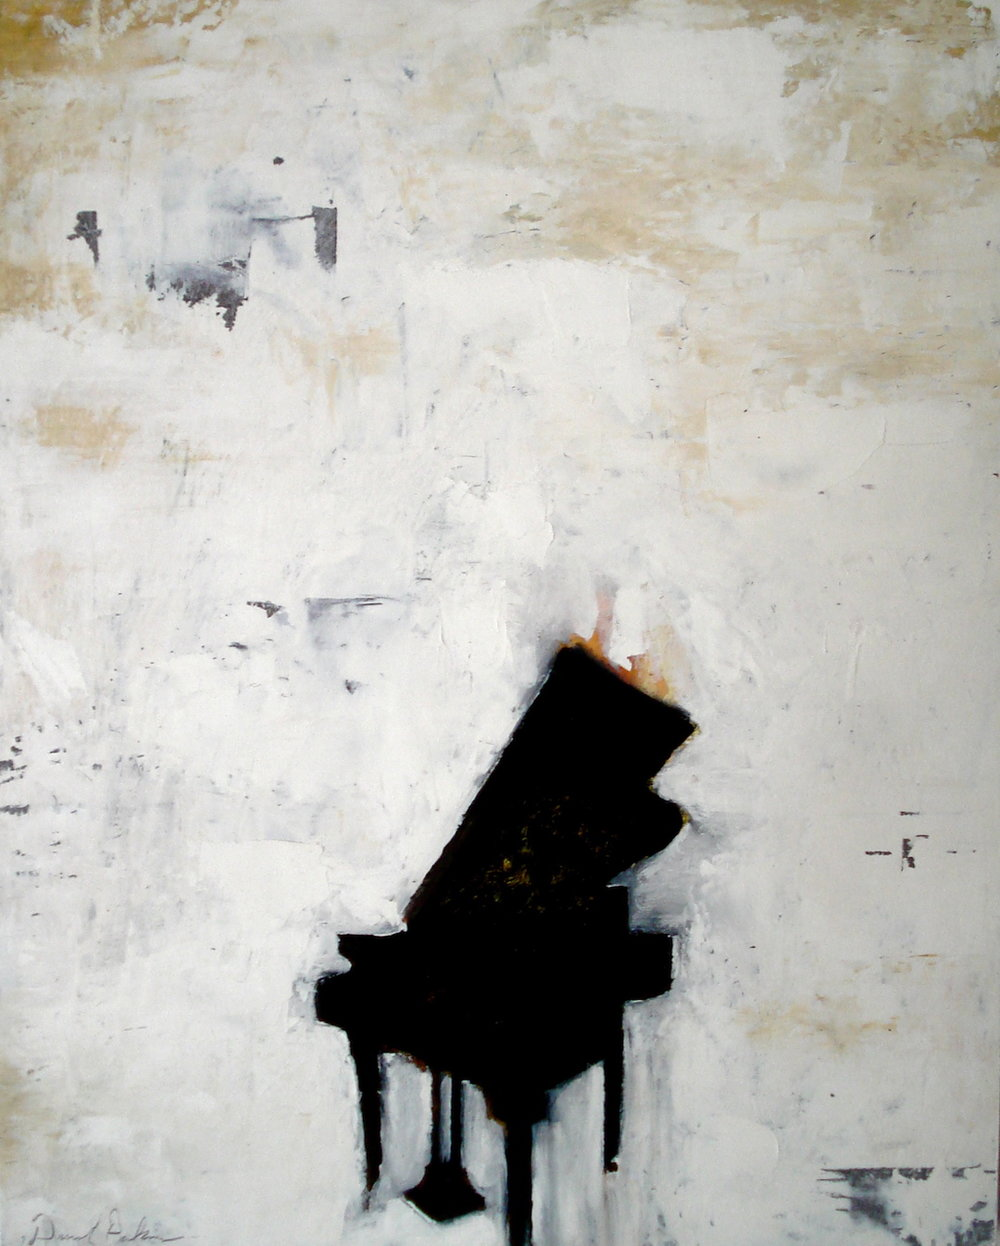 Piano . Oil on Panel. 2007. 16x20""